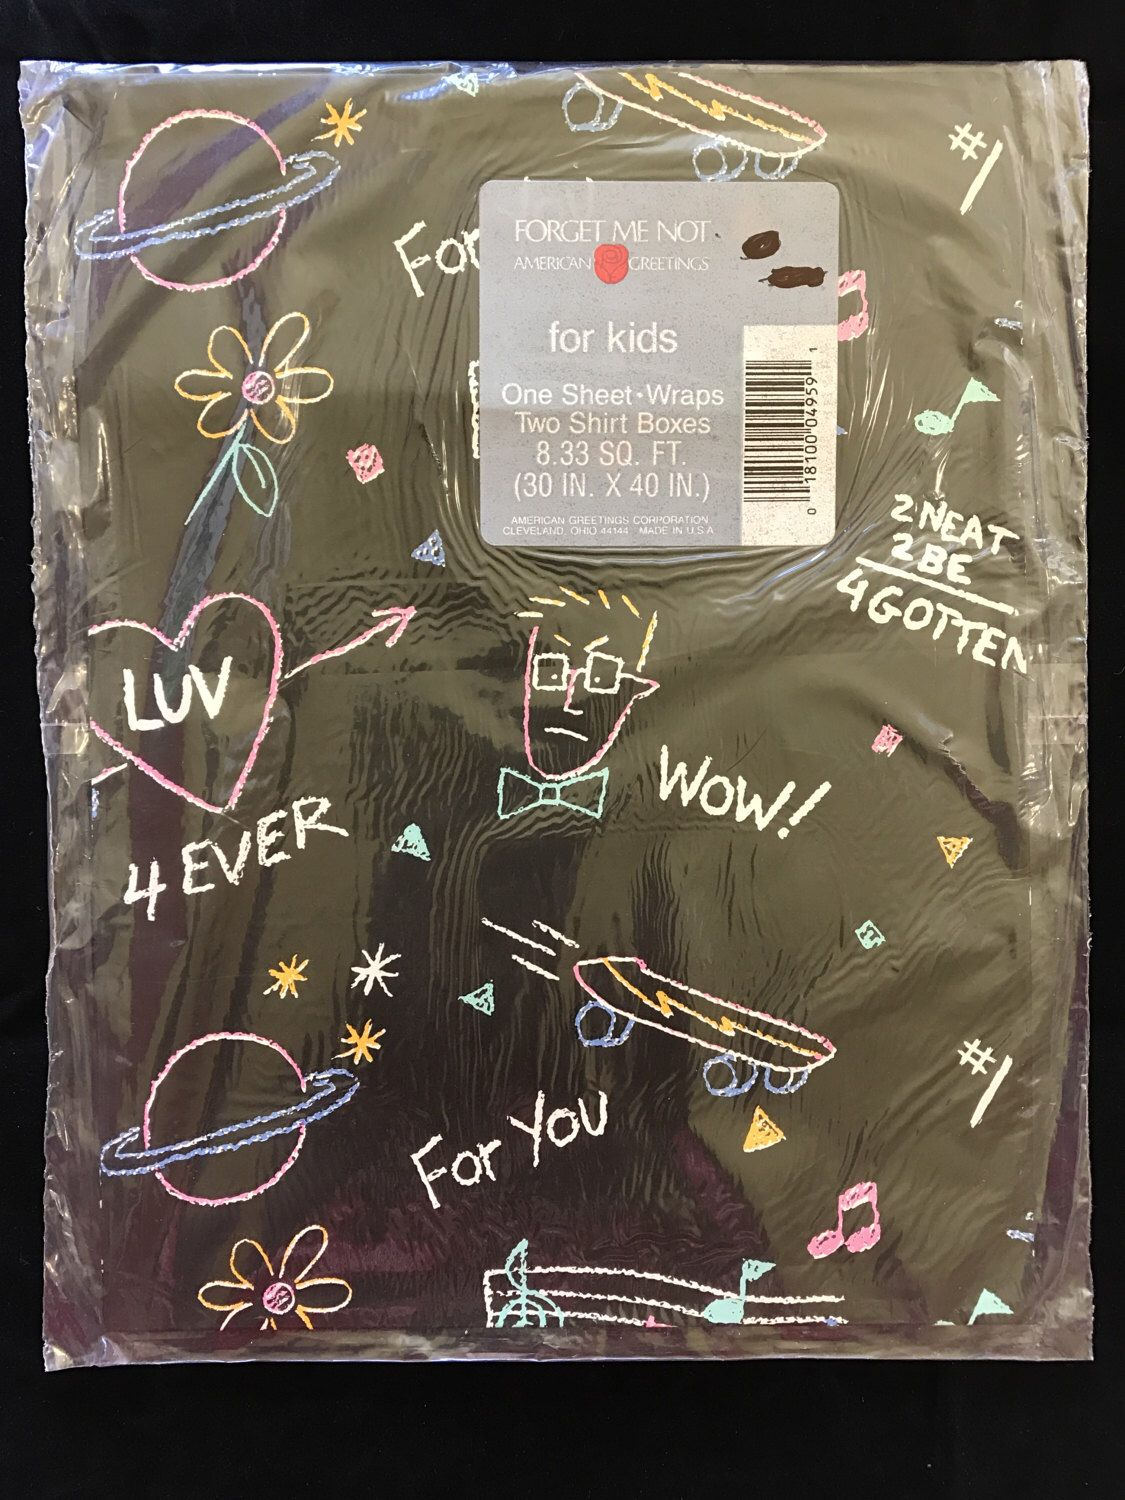 Vintage American Greetings Forget Me Not For Kids Gift Wrap